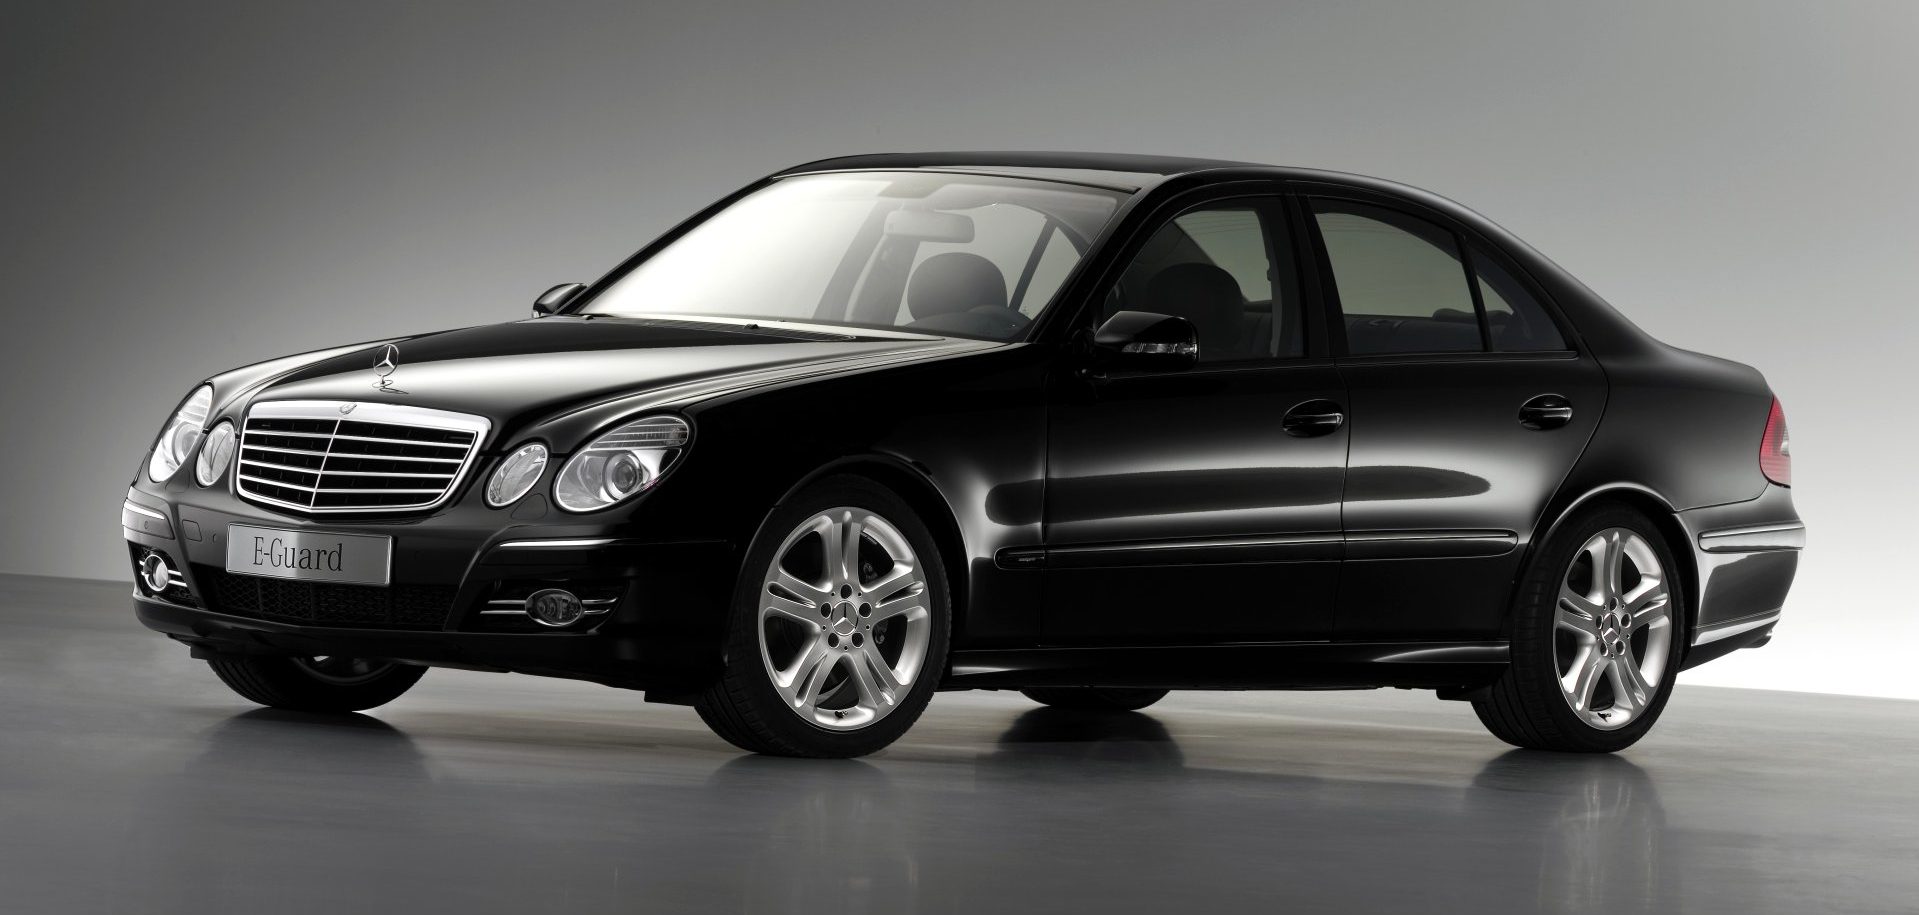 Mercedes Benz Cars Images Cars Bella s Mercedes Benz